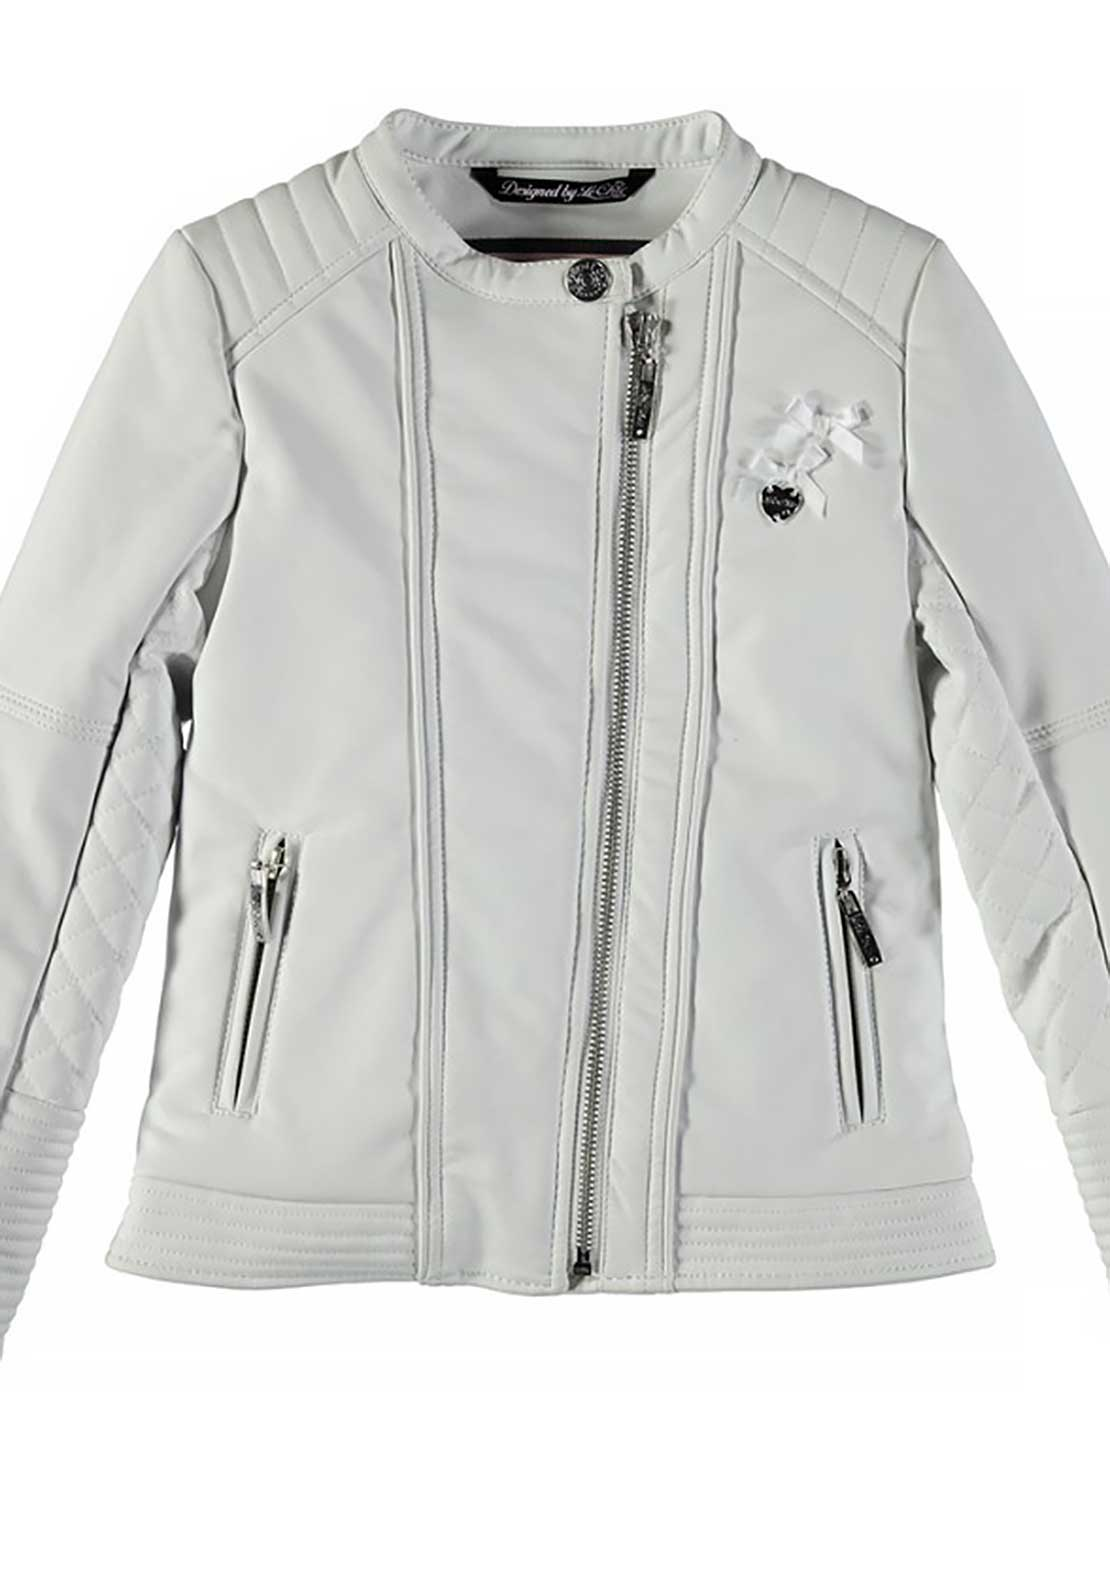 Le Chic Girls Faux Leather Biker Jacket, White